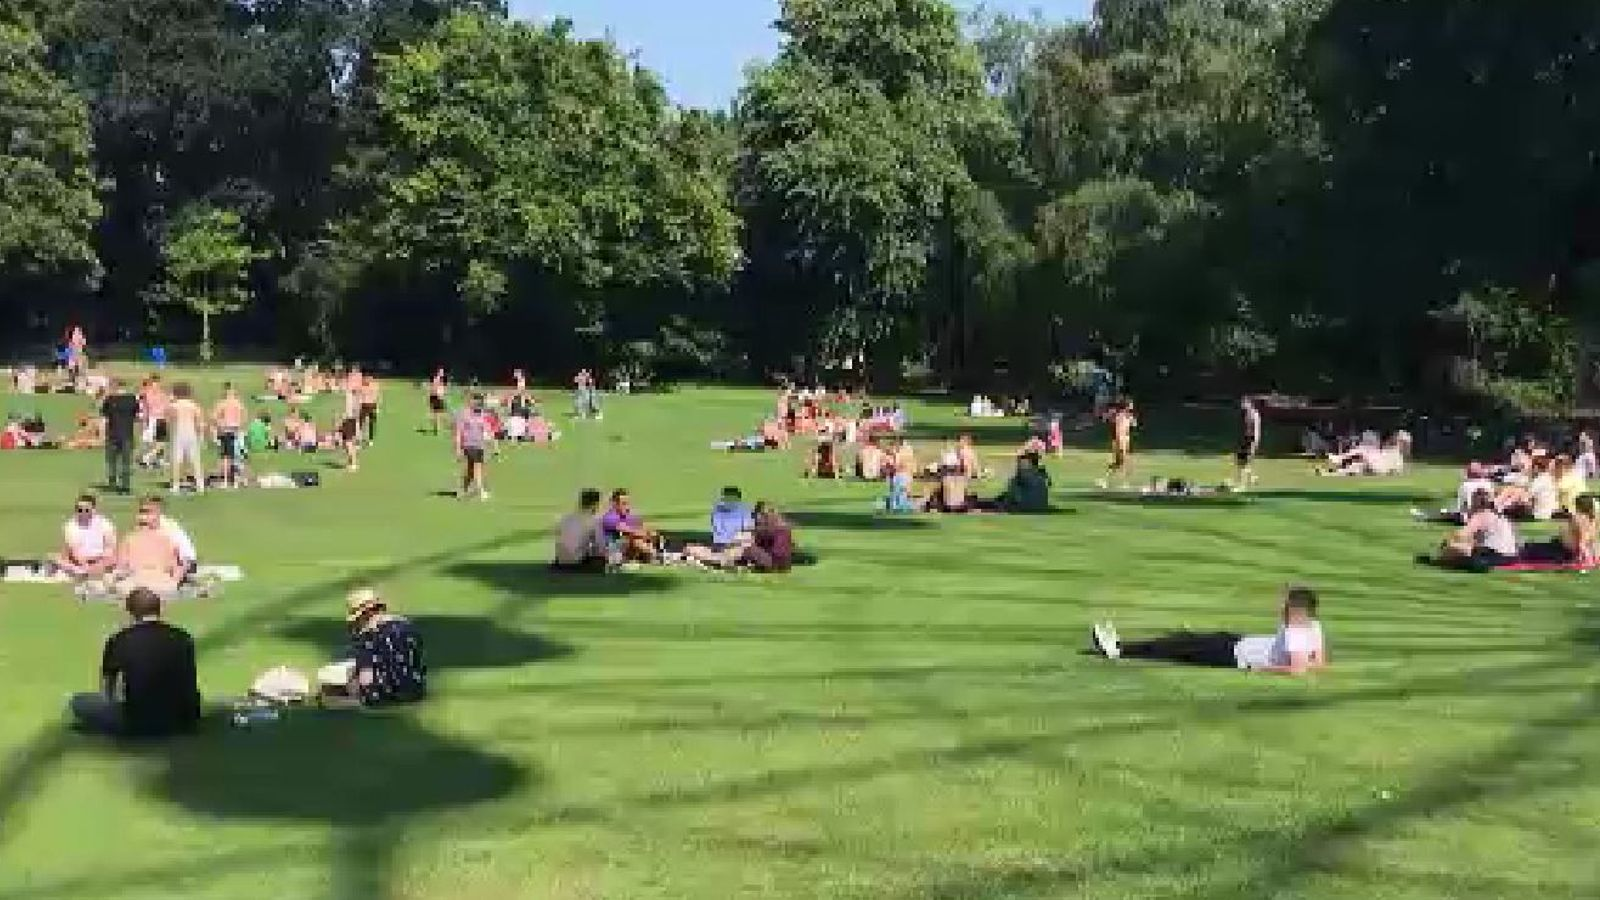 UK weather: Northern Ireland hits hottest temperature ever recorded as mercury hits 31.2C in County Down